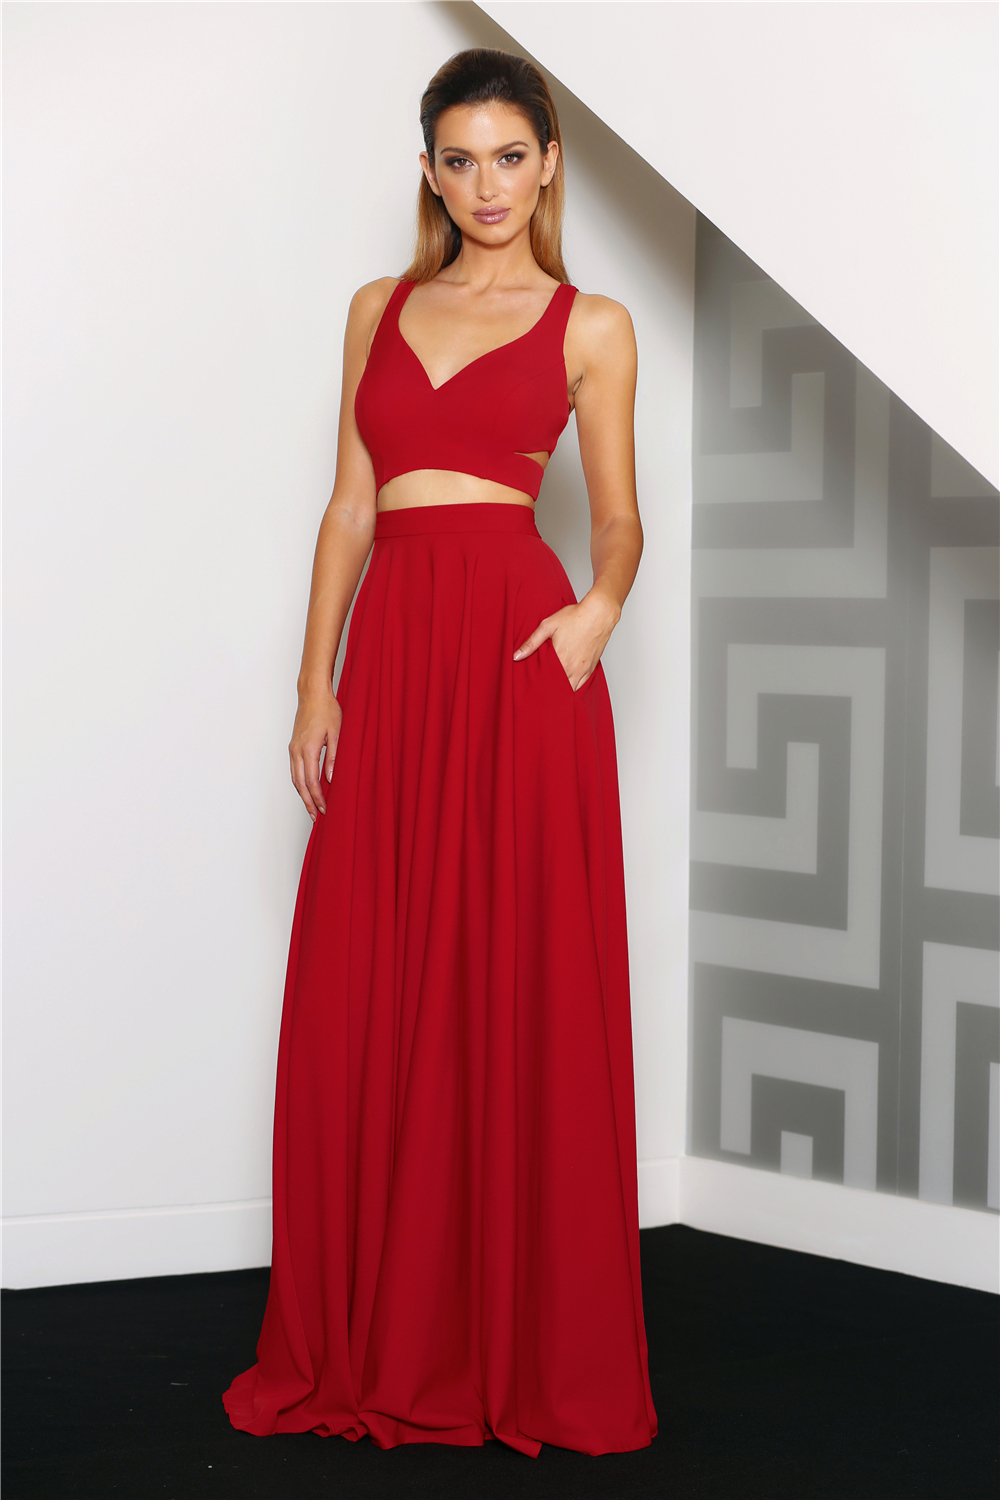 Renee Two-Piece Formal Dress - A Bold Head Turner - Sentani Boutique